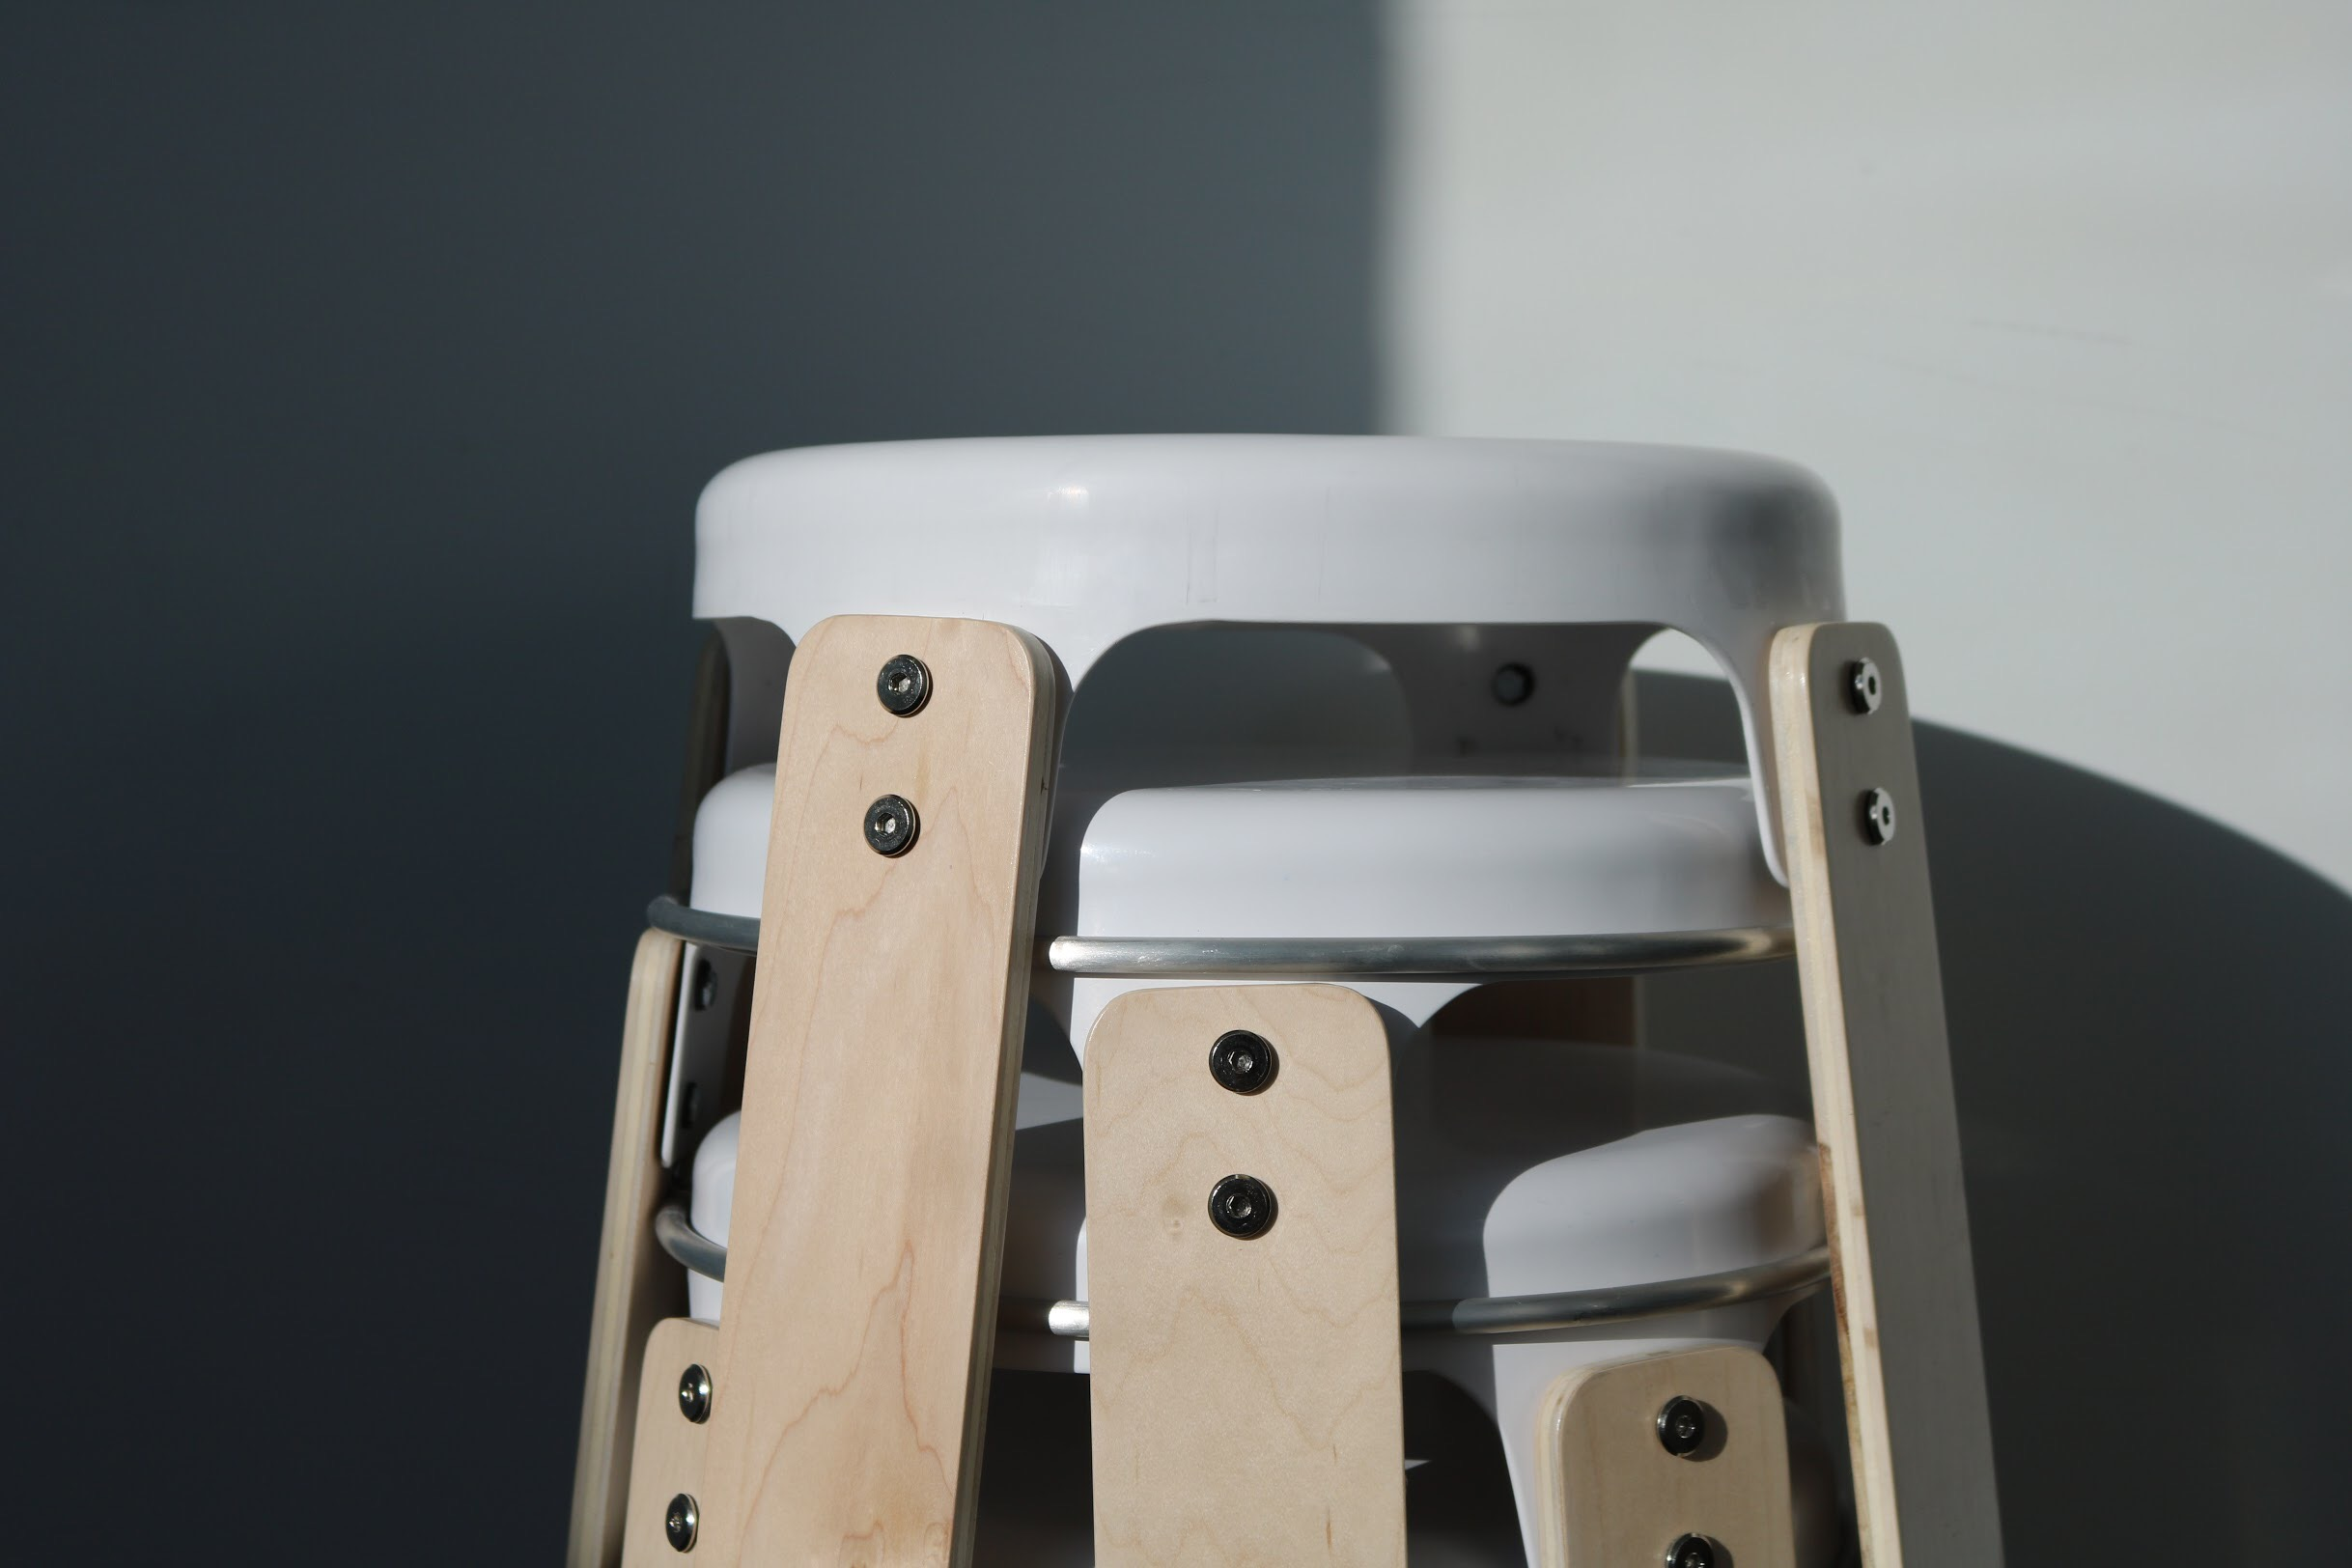 Compact, portable, friendly. - The Core Stool stacks one on top of the other. This allows the stools to take up as little space as possible, while remaining easy to pull apart.